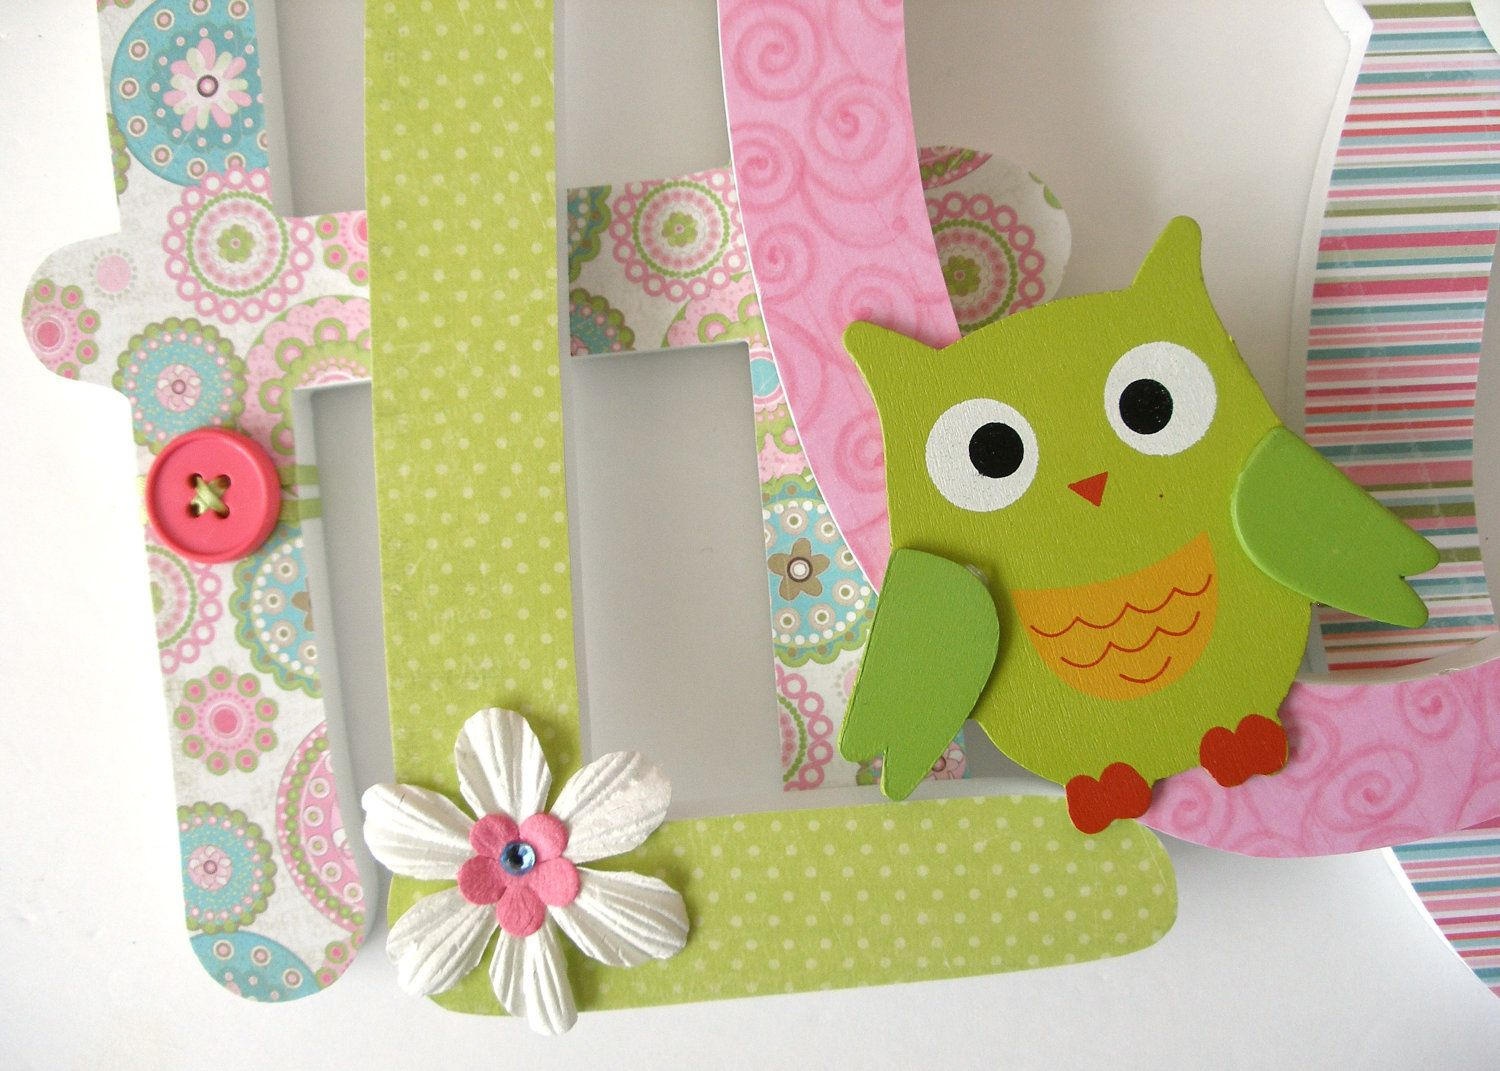 Bedroom Decor Letters custom wooden letters - bright owls theme - lime, green, pink, and